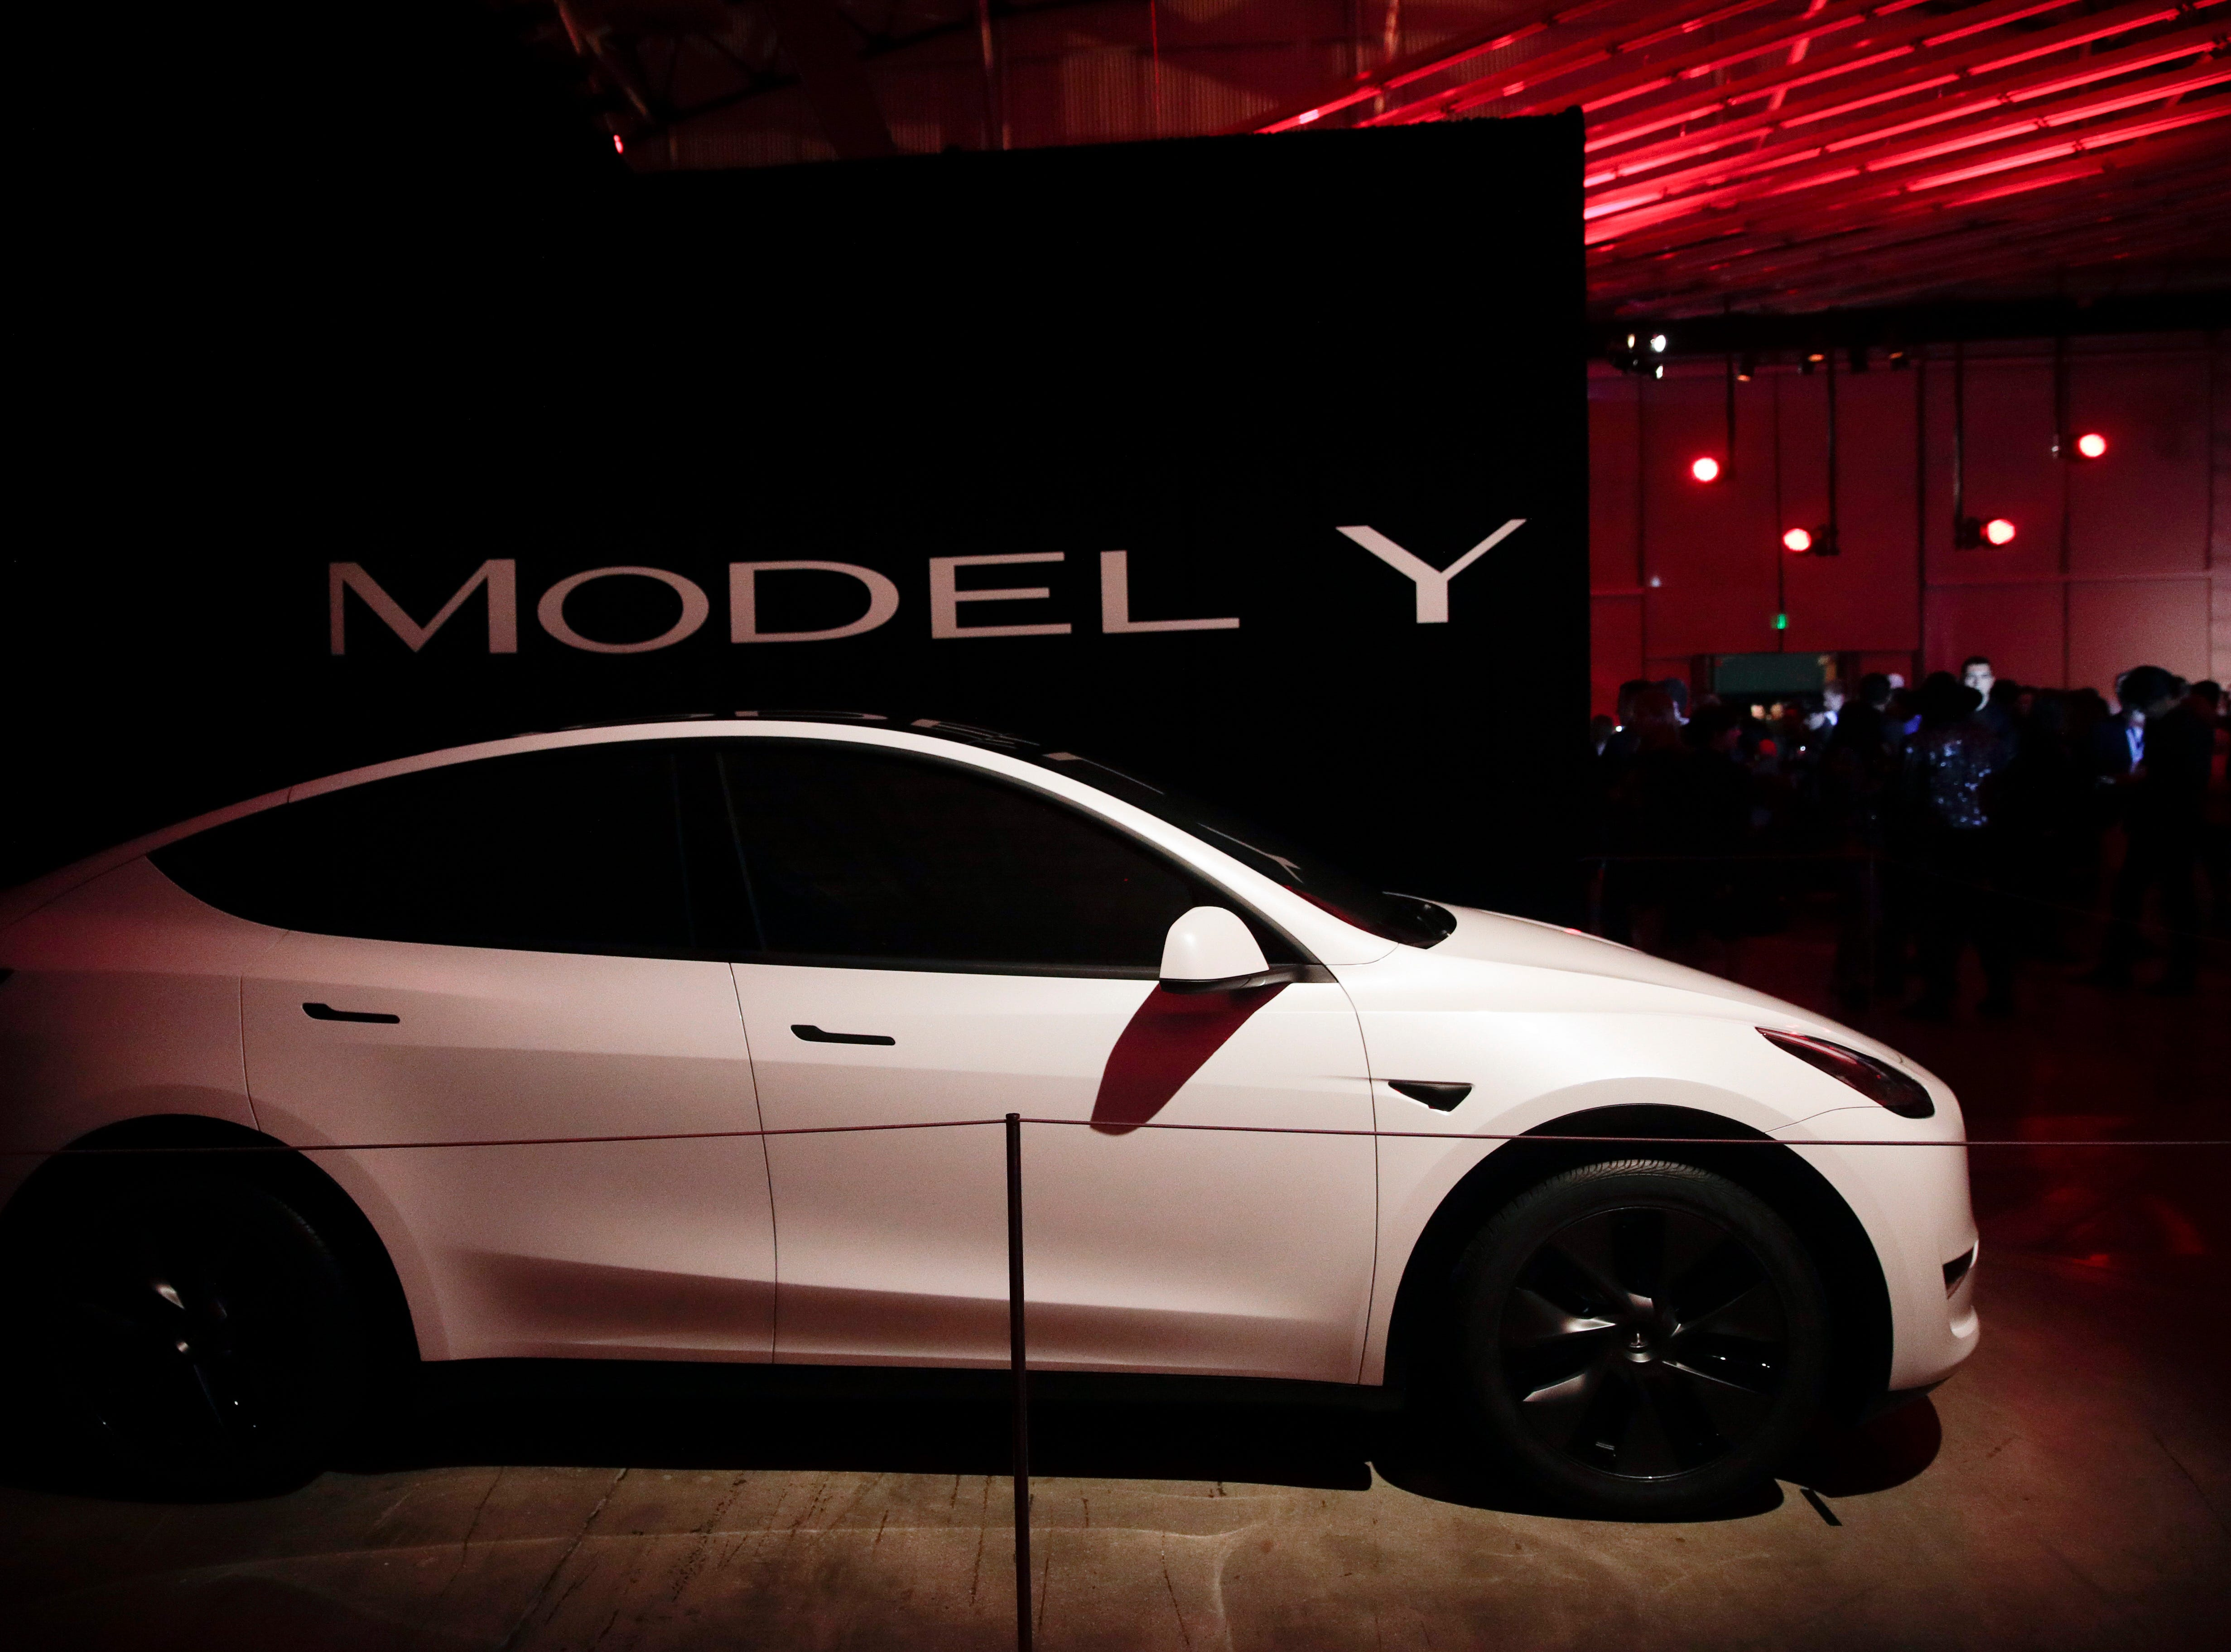 Tesla's Model Y is displayed at the company's design studio Thursday, March 14, 2019, in Hawthorne, Calif.